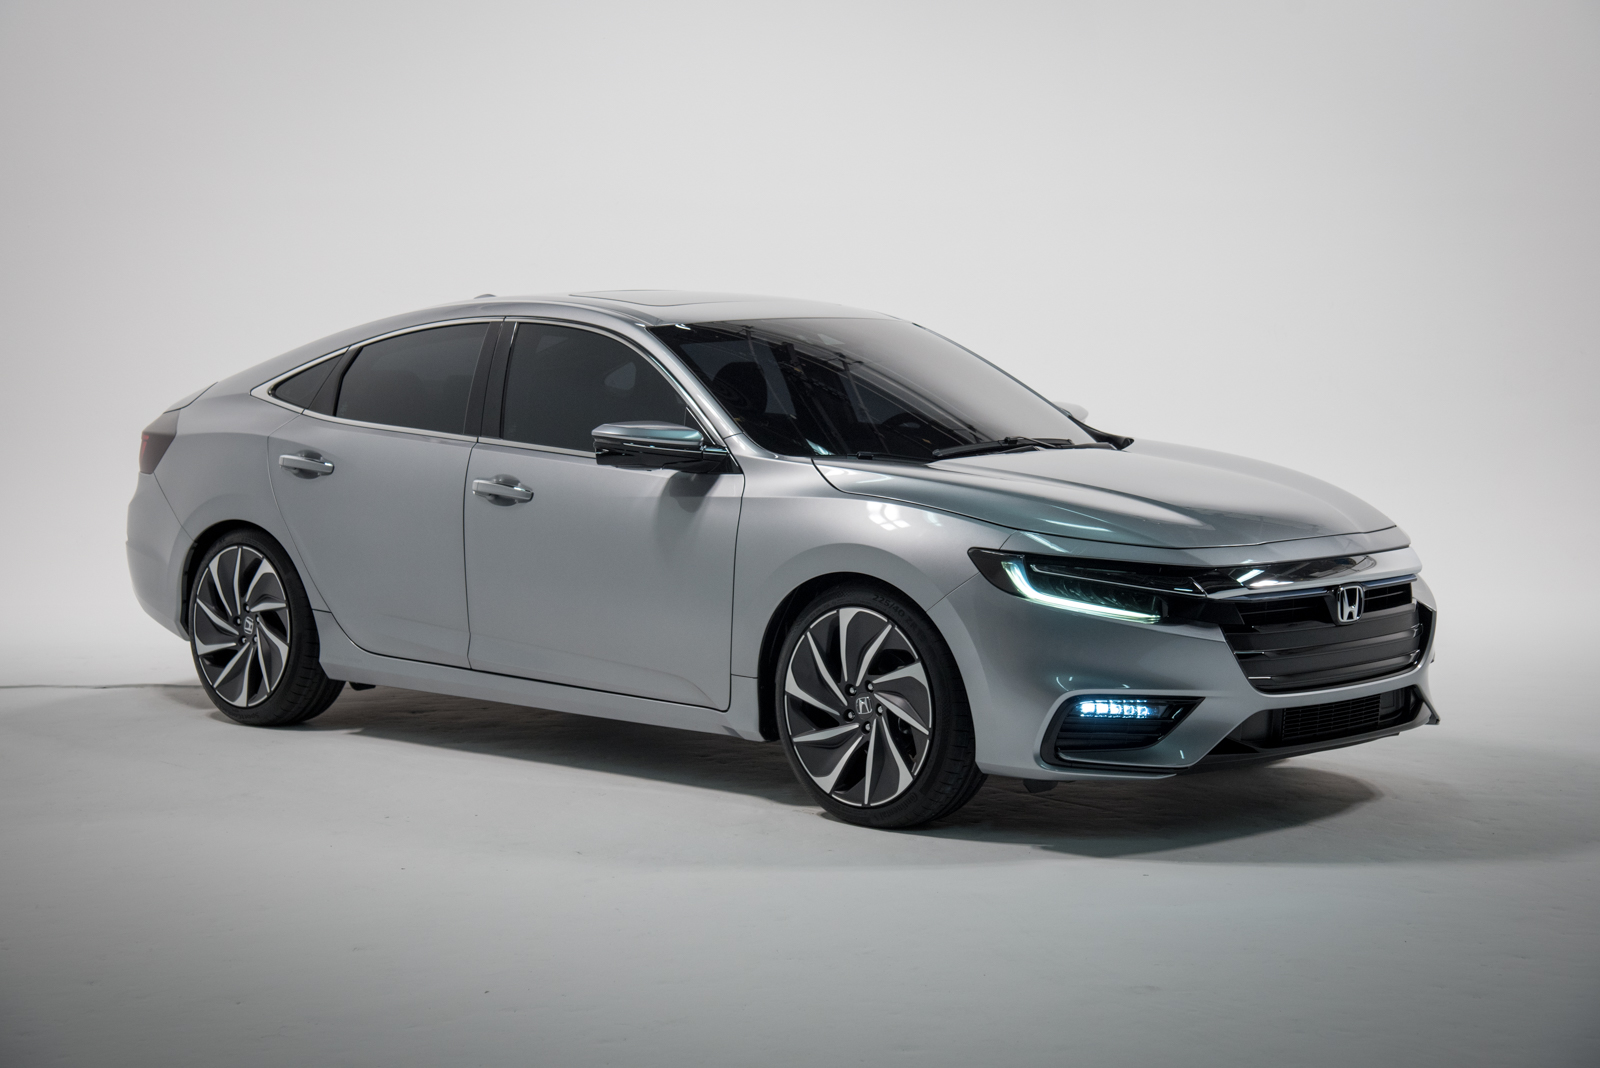 2019 honda insight could be ultimate prius slayer news. Black Bedroom Furniture Sets. Home Design Ideas